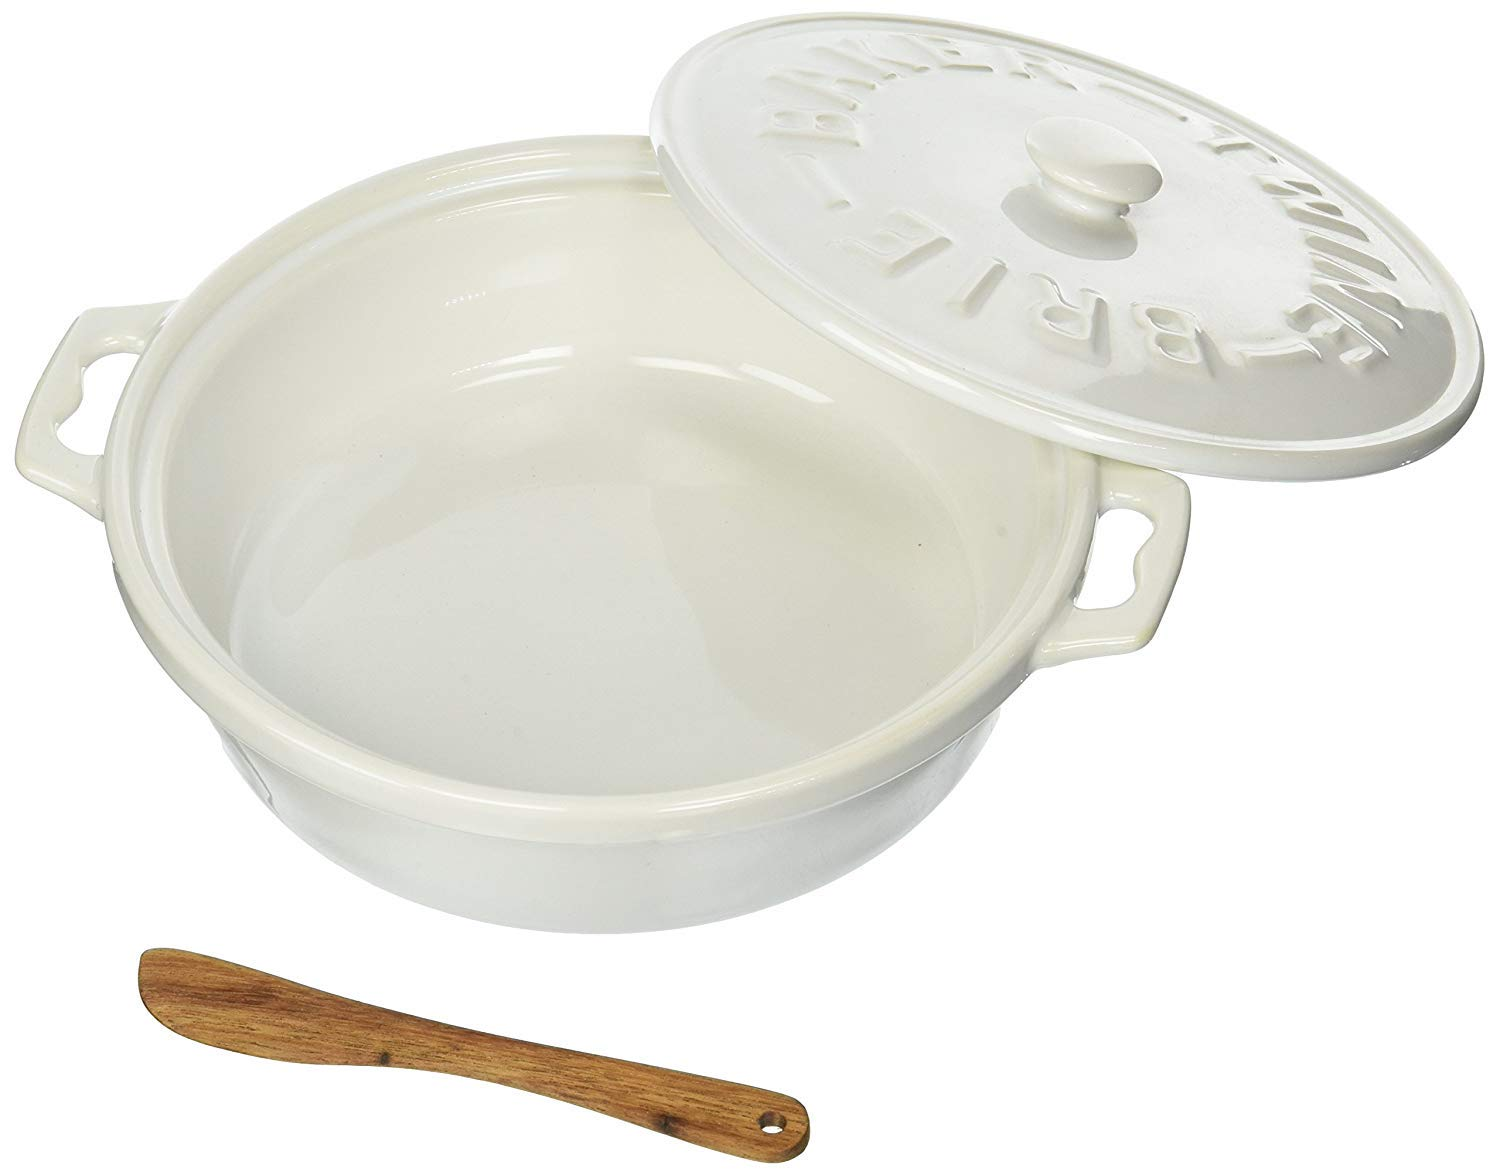 Christina Home Designs White Brie Baker, 3 piece set includes base, lid and wooden spoon by Christina (Image #1)